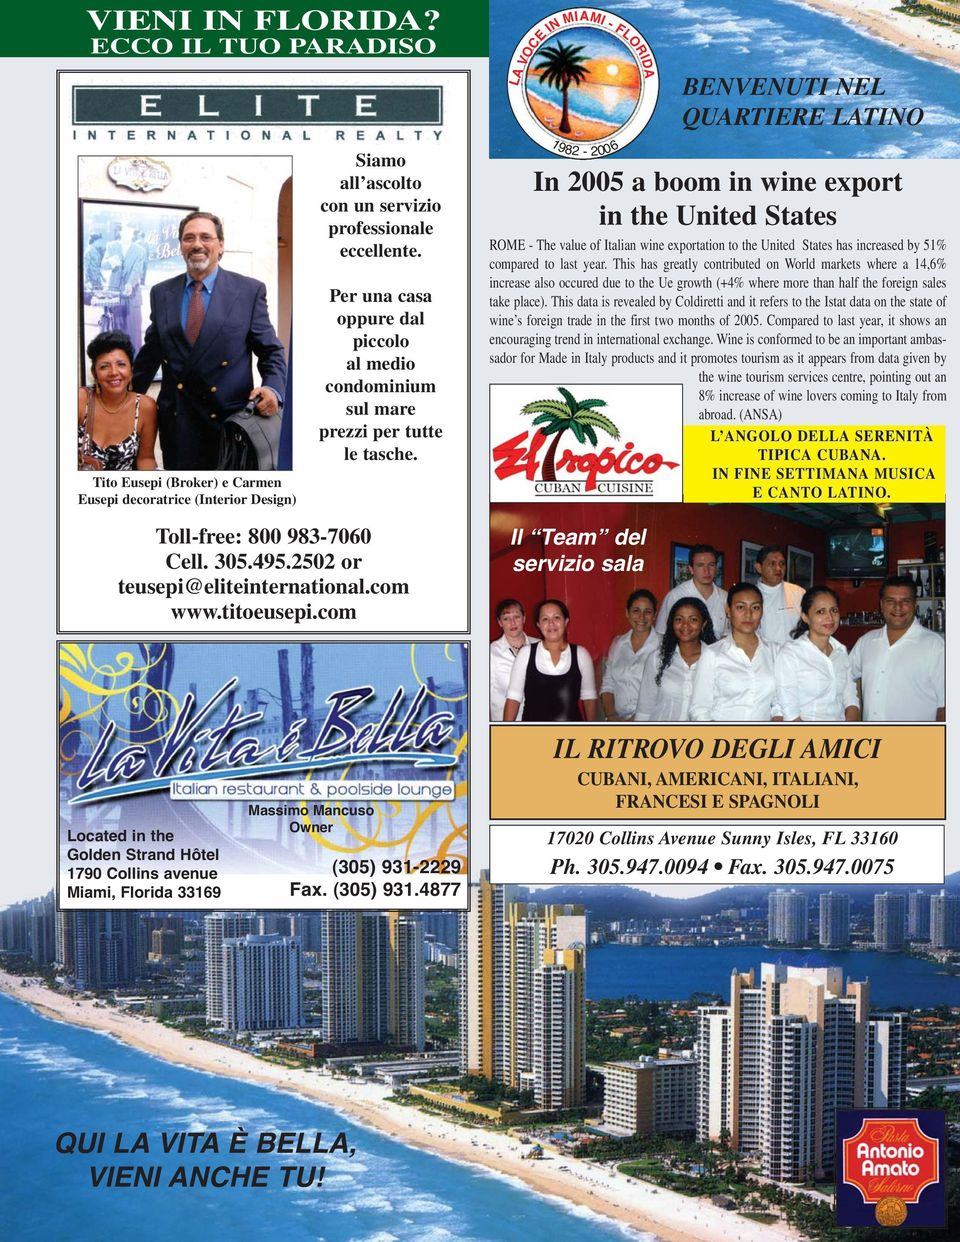 com LA VOCE IN MIAMI 1982-2006 - FLORIDA Il Team del servizio sala BENVENUTI NEL QUARTIERE LATINO In 2005 a boom in wine export in the United States ROME - The value of Italian wine exportation to